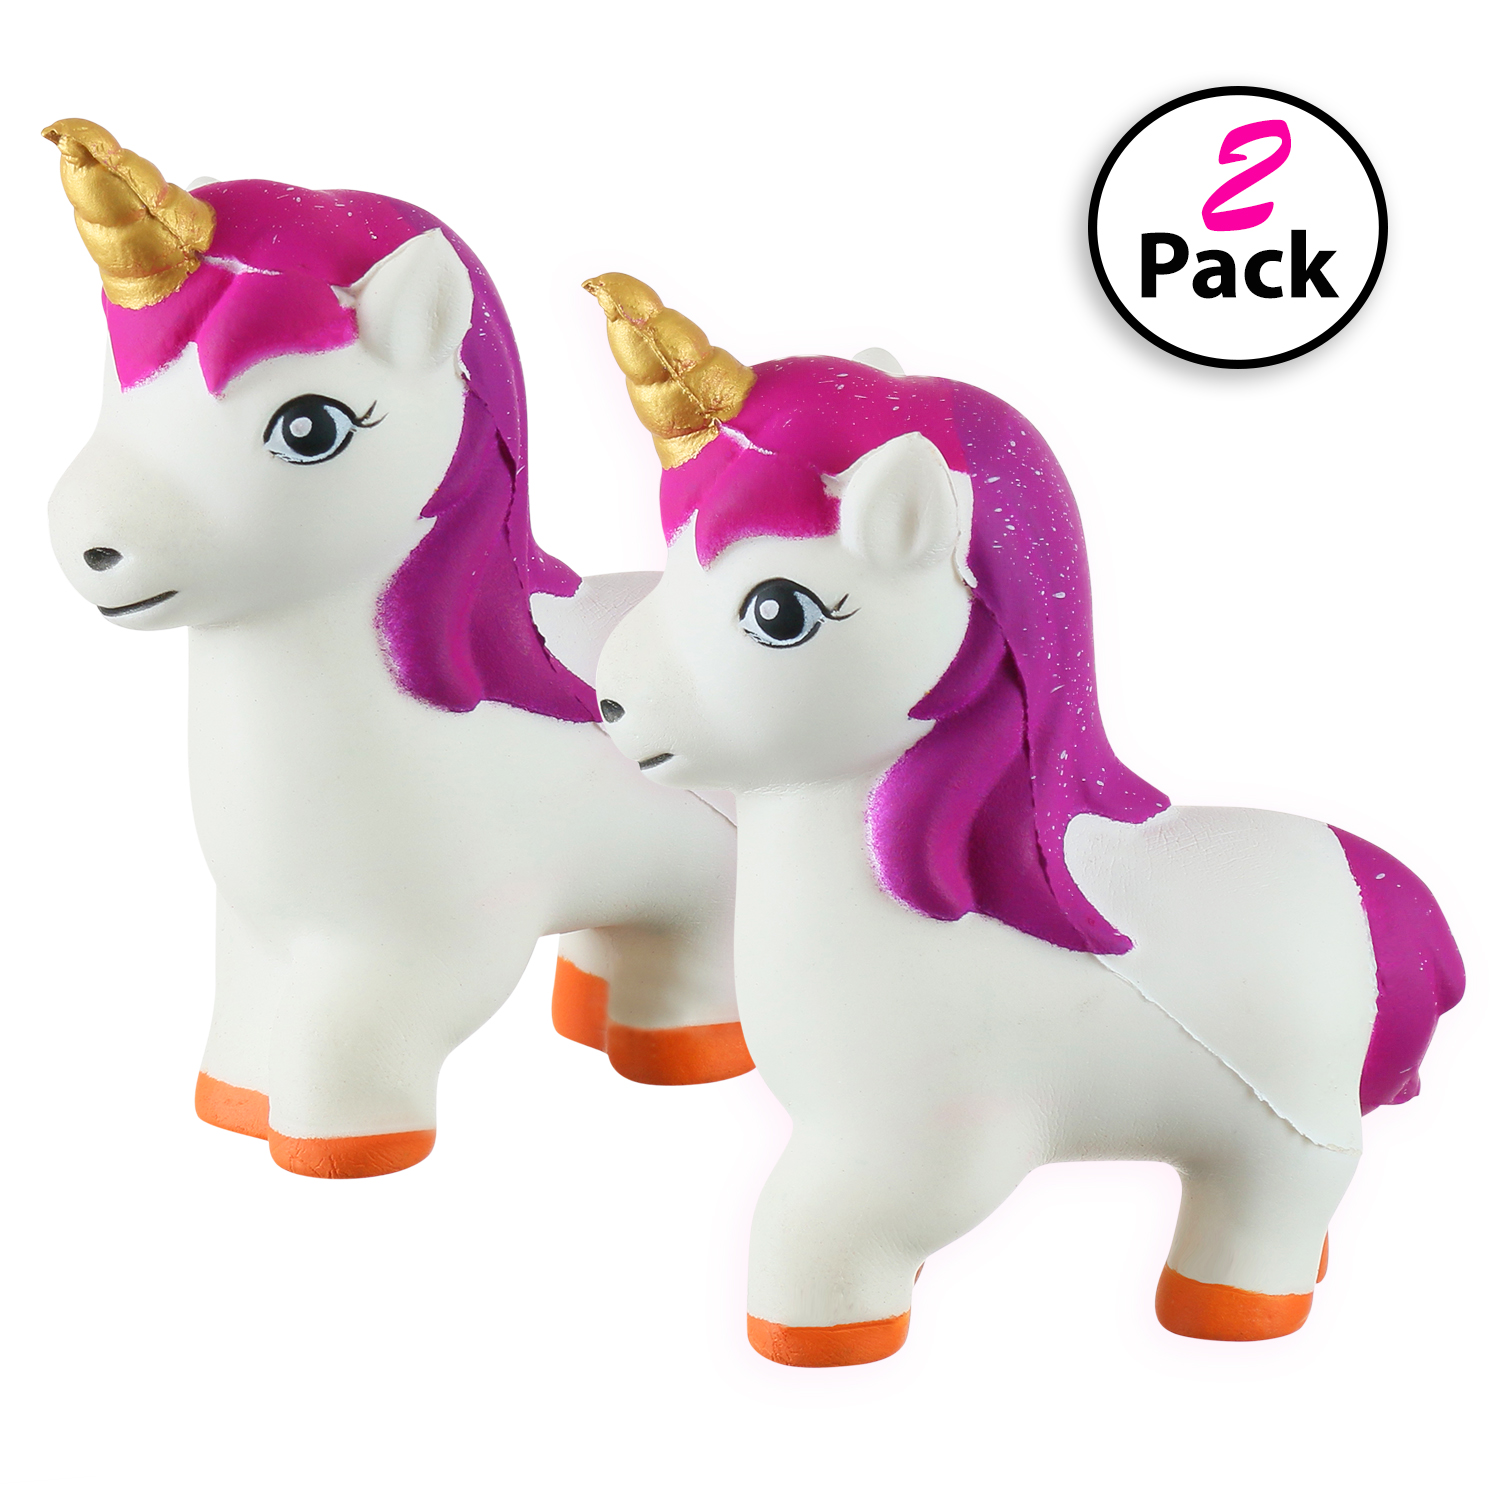 DG SPORTS Slow Rising Kawaii Unicorn Squishy Toy (2-Pack), Cute Animal Shaped Stress Relief Toys for Kids, 4 x 2 x 5 inches